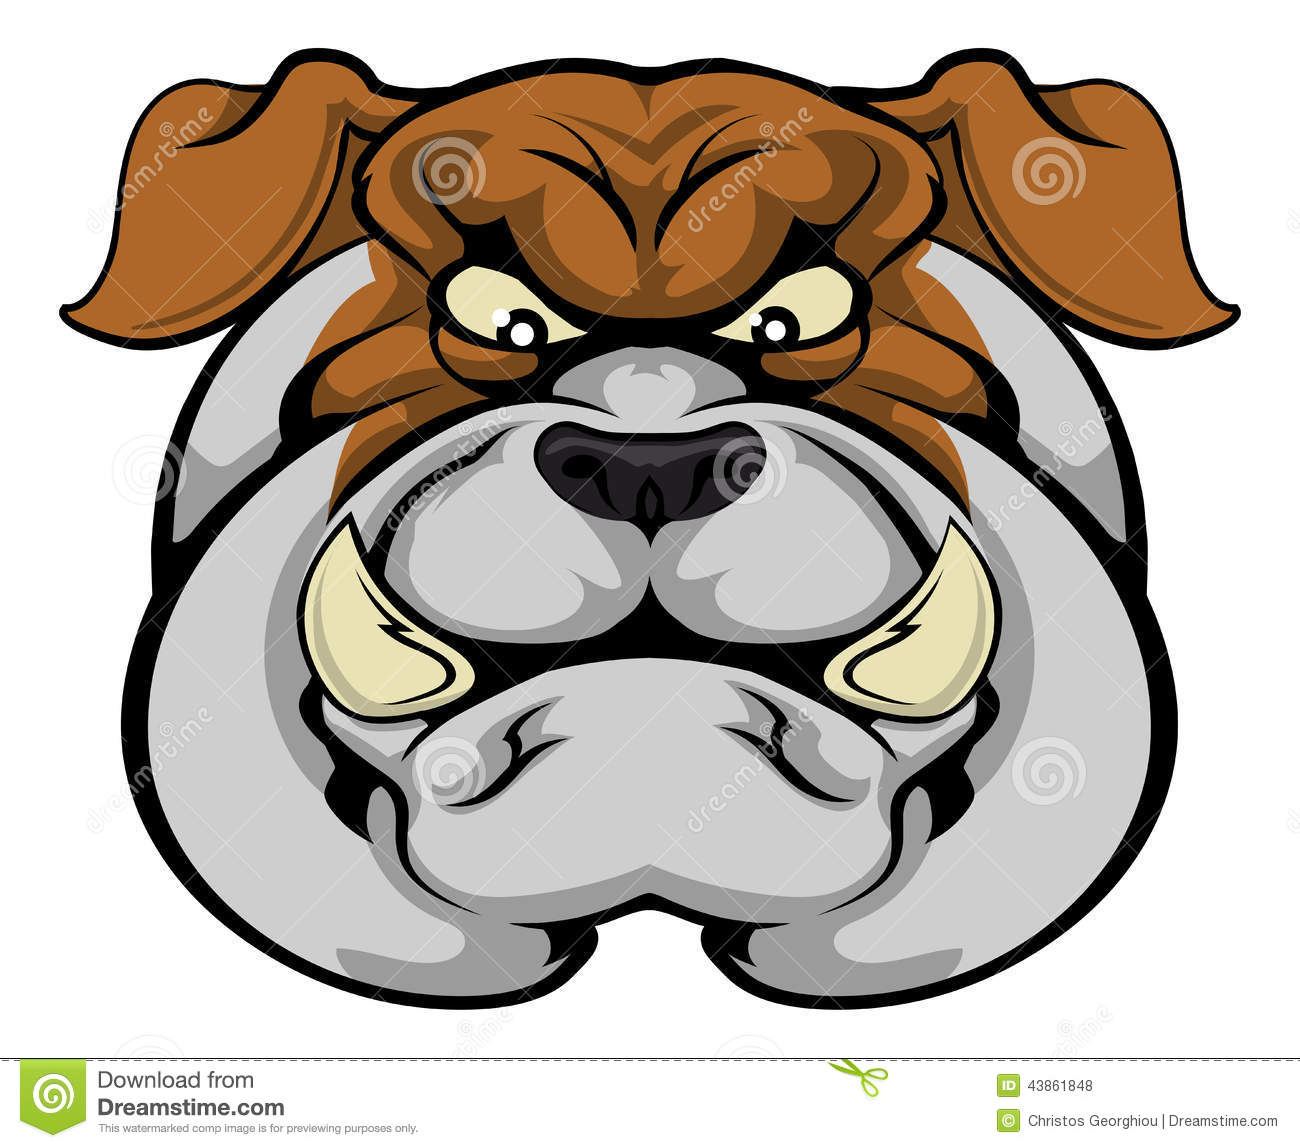 Cartoon Characters Facing Forward : Bulldog mascot face stock vector illustration of icon